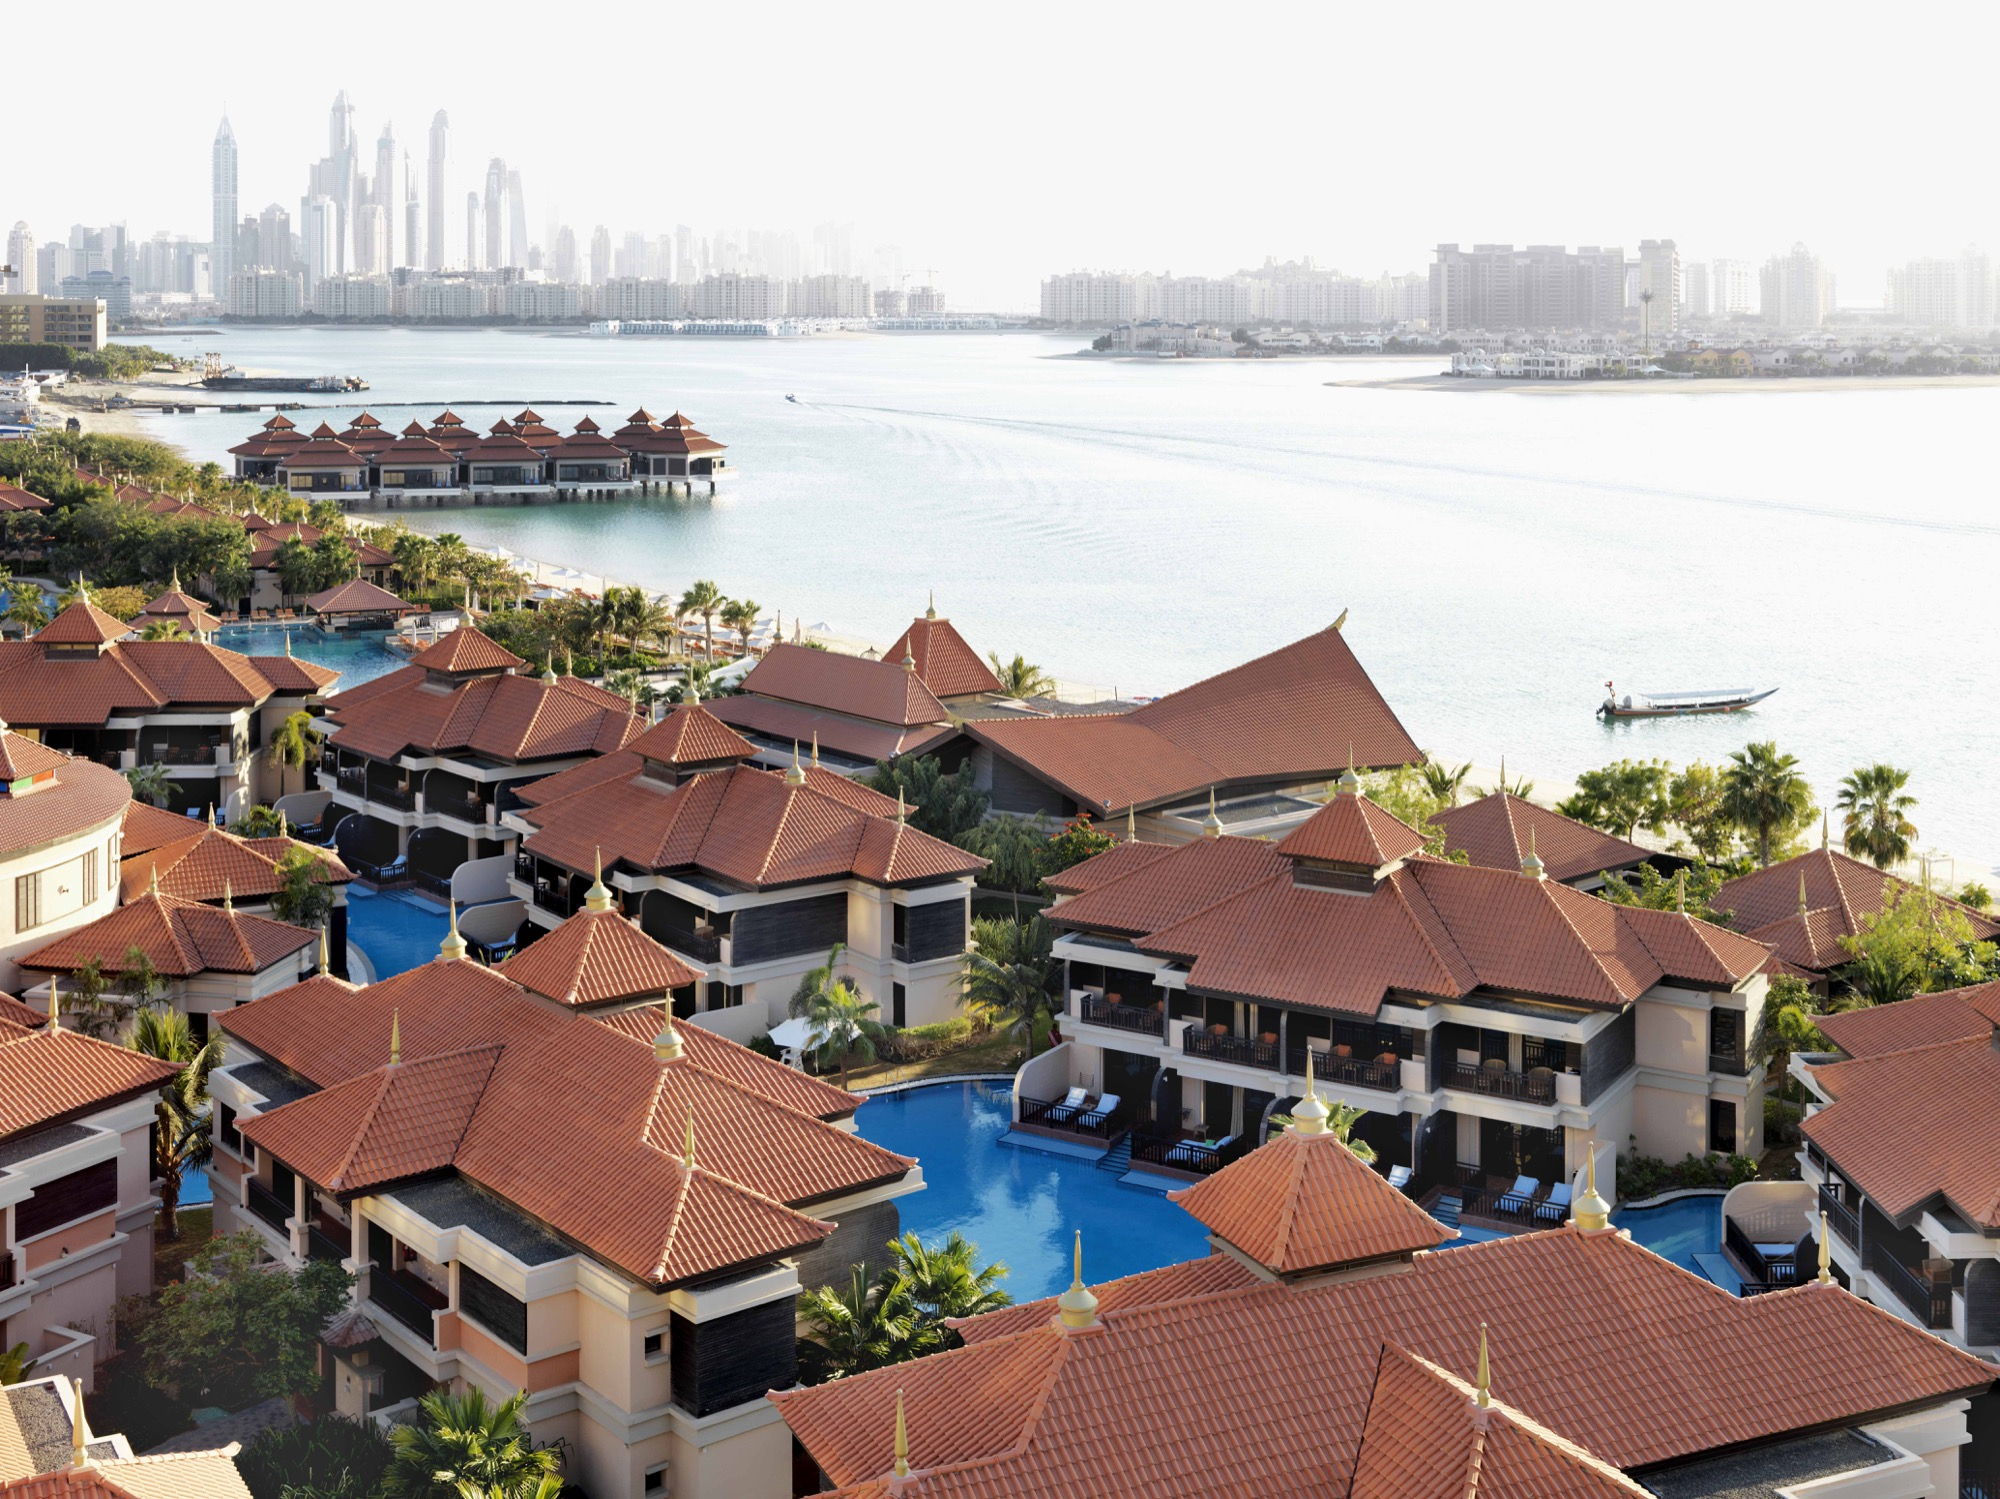 Anantara the palm villas Aerial